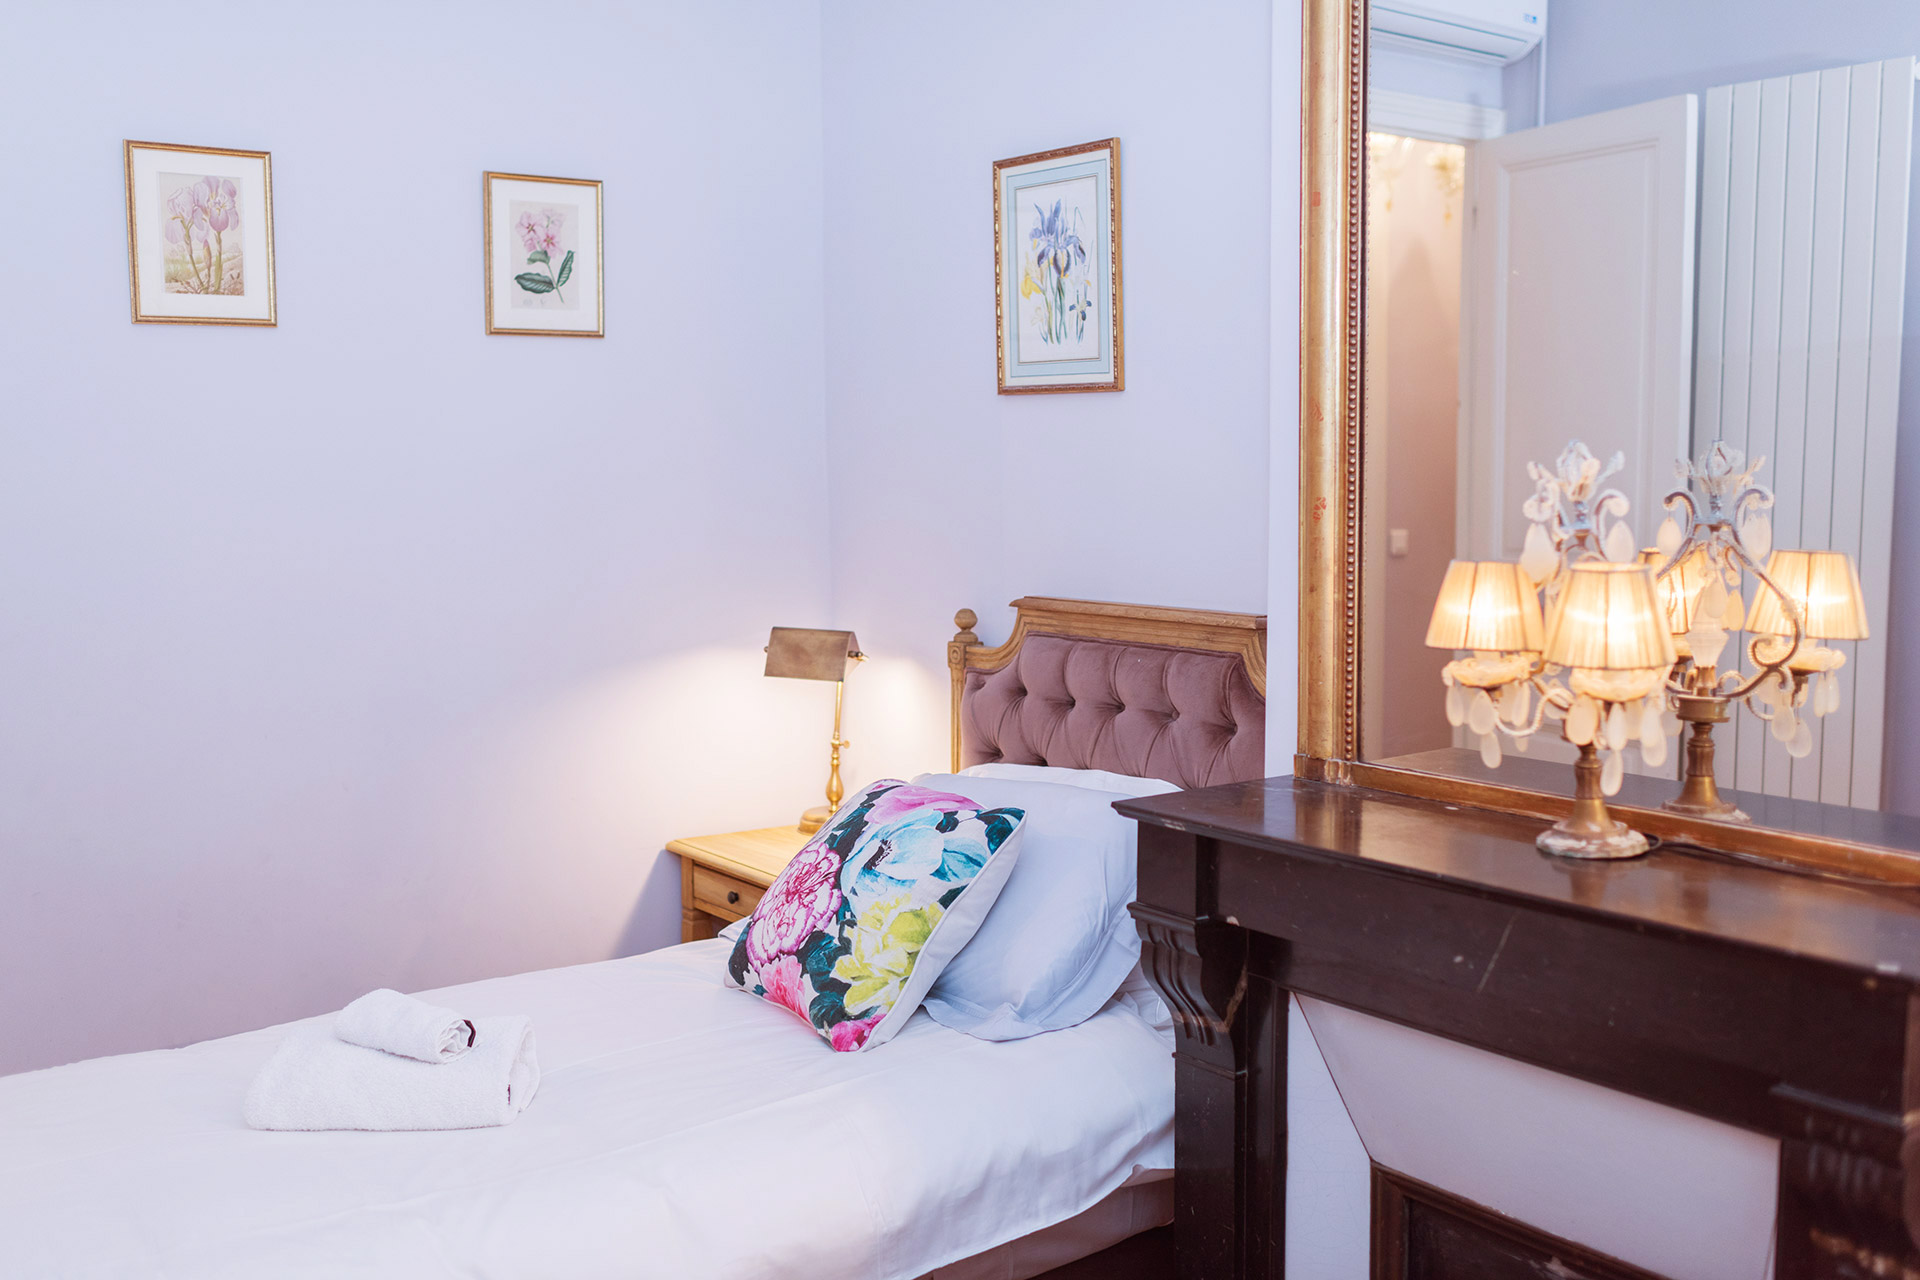 One of the single beds in the second bedroom of the Maubert vacation rental offered by Paris Perfect